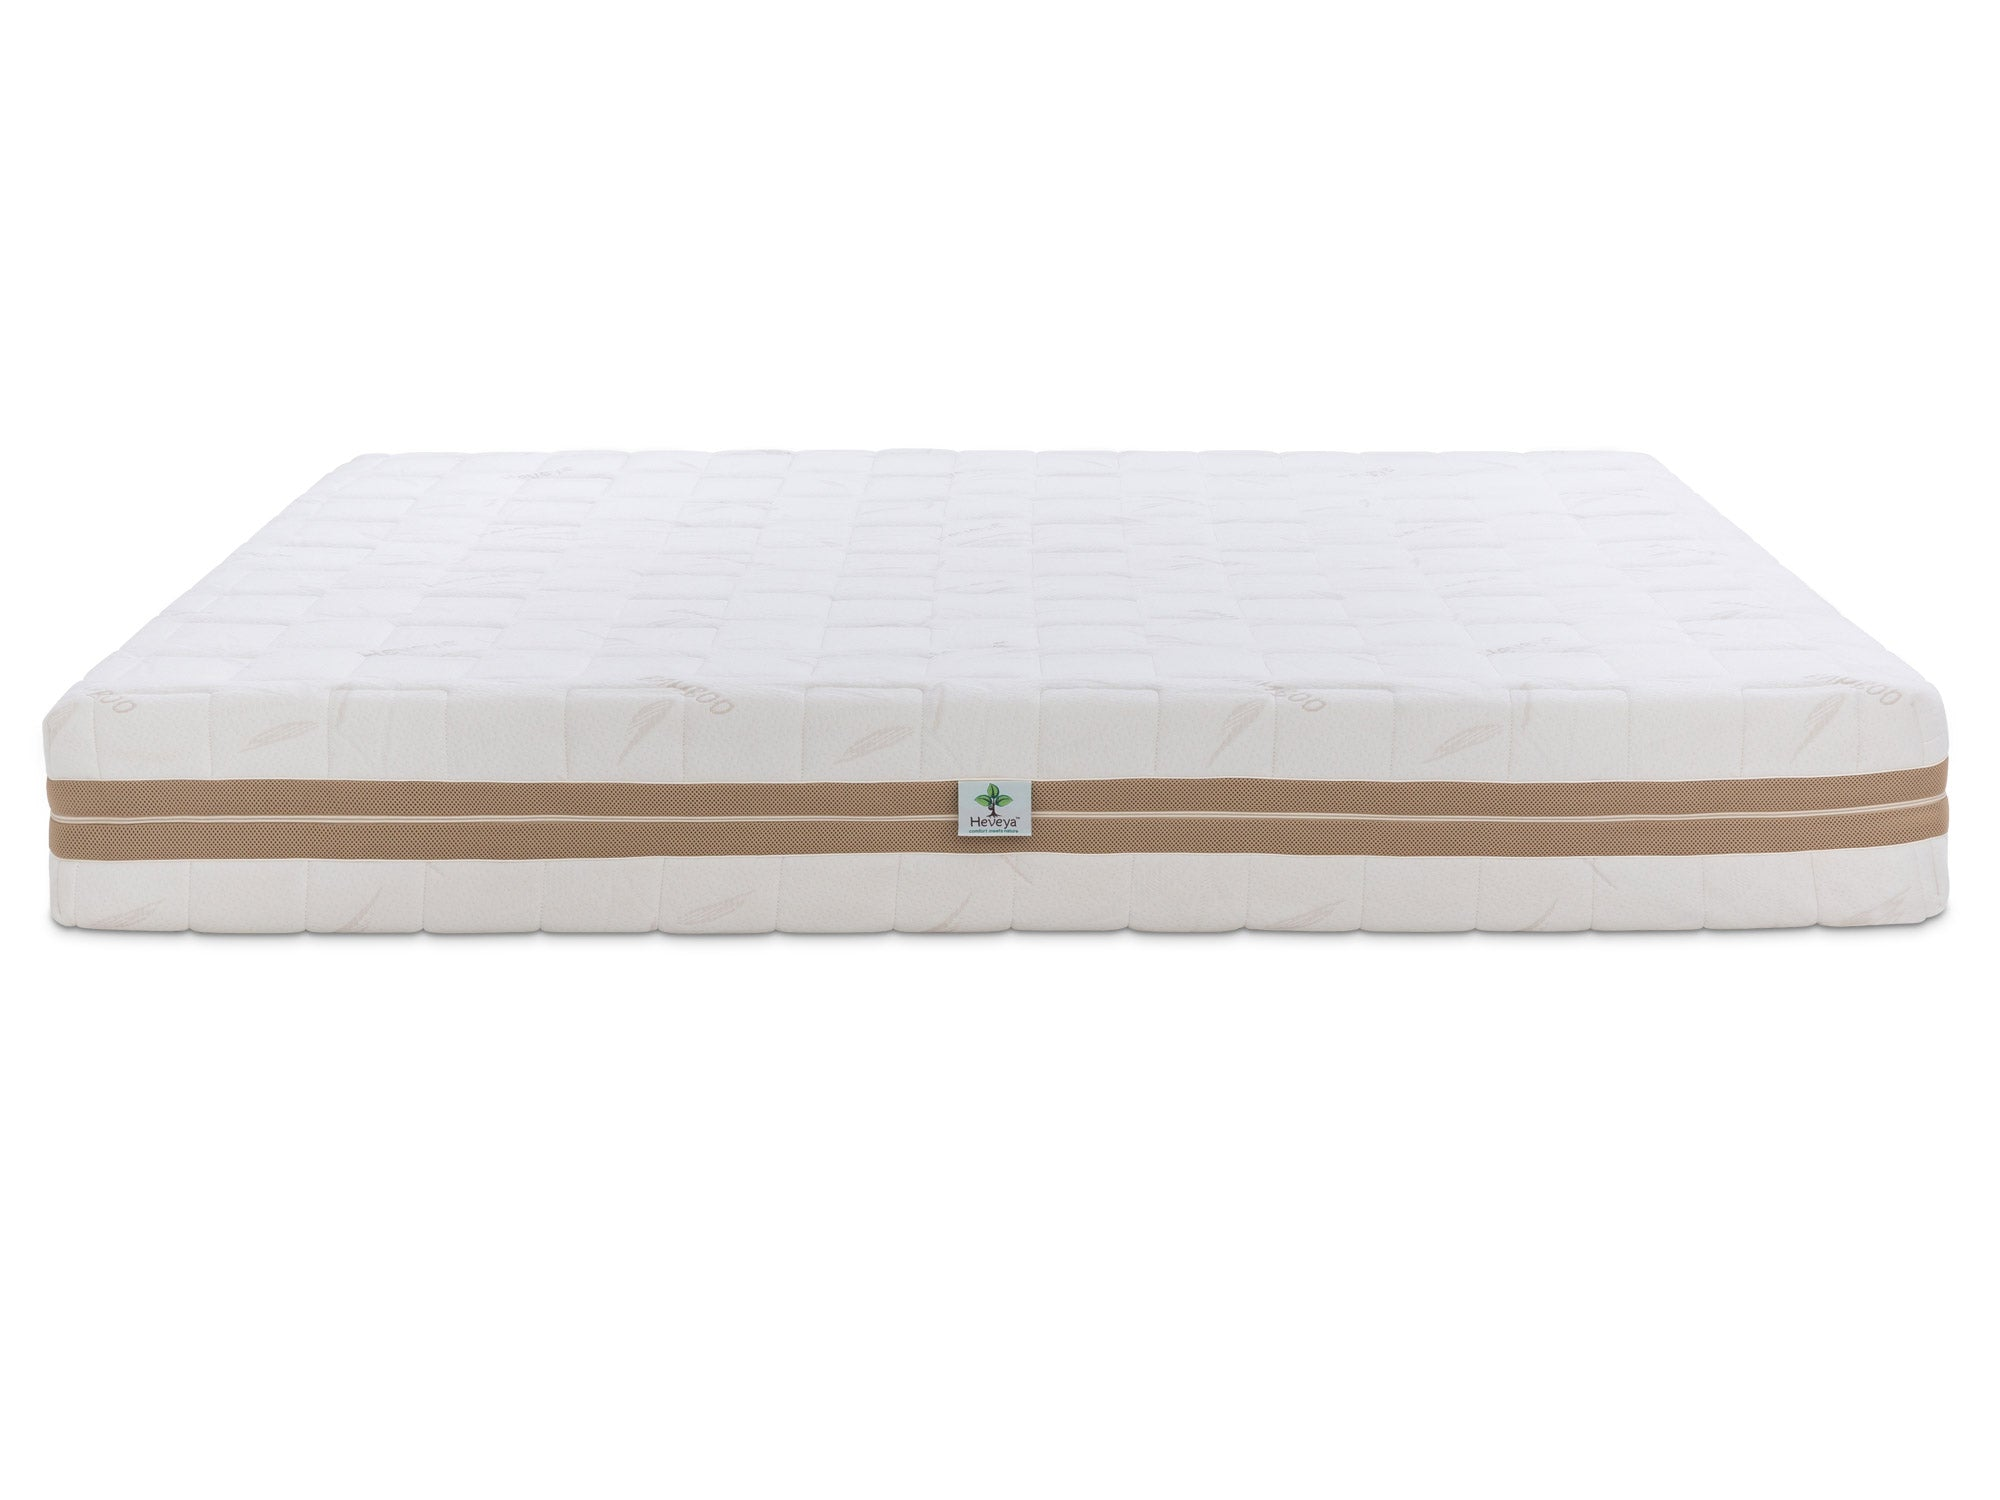 Heveya natural organic latex mattress king size 180 x 200cm Mattress king